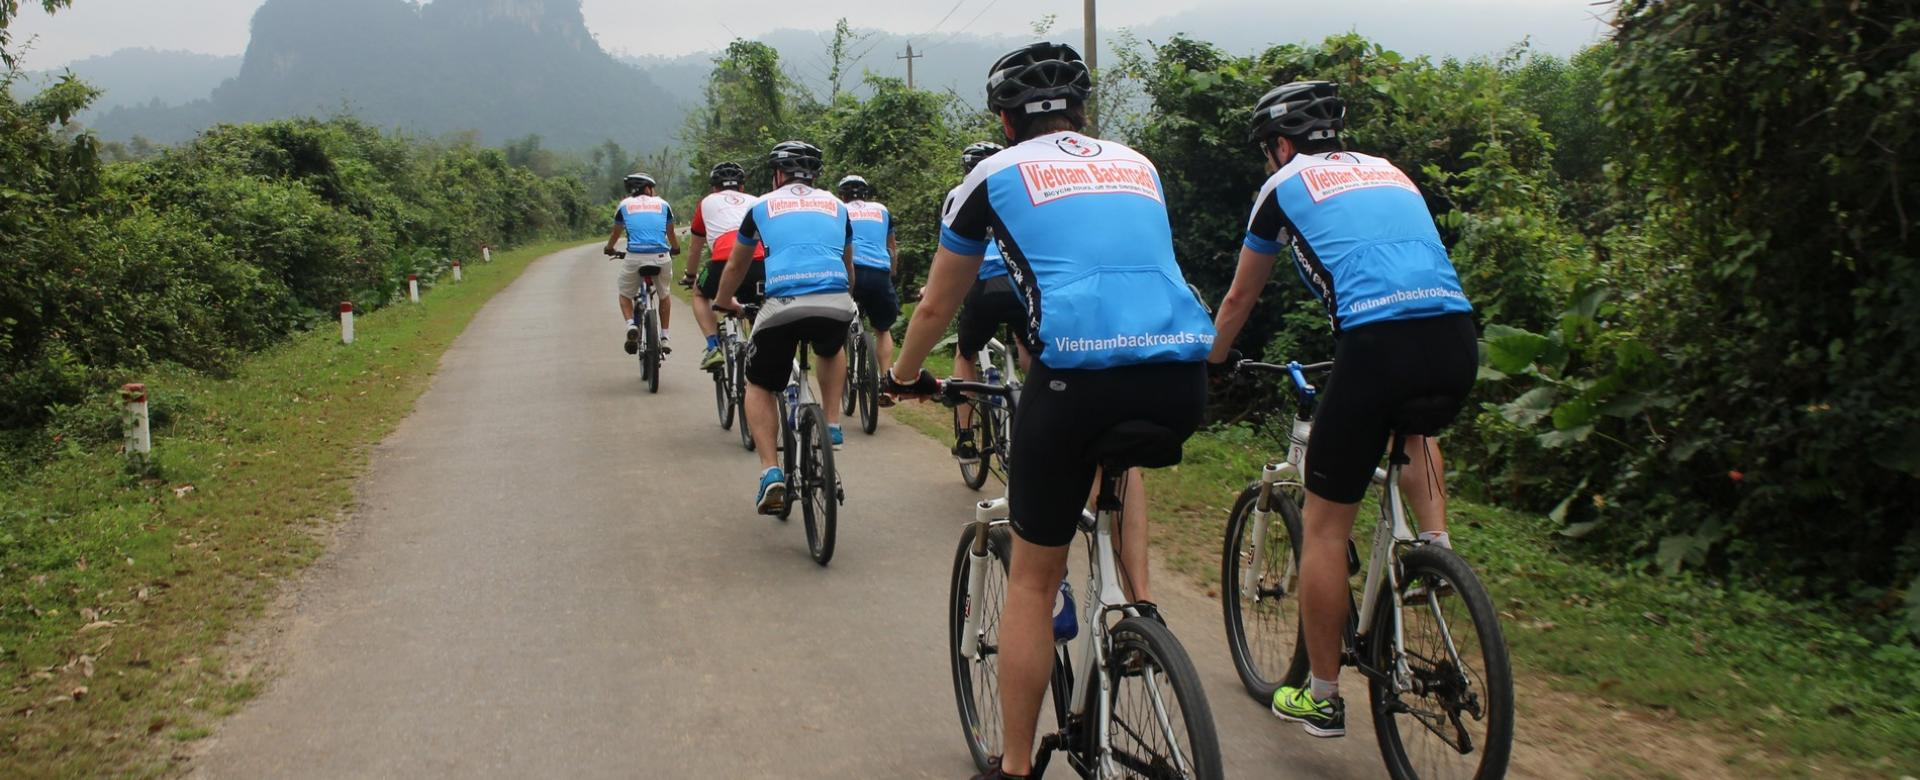 Cycling on Ho Chi Minh Trais - Ke Sanh - A Luoi - Hue - Hoi An